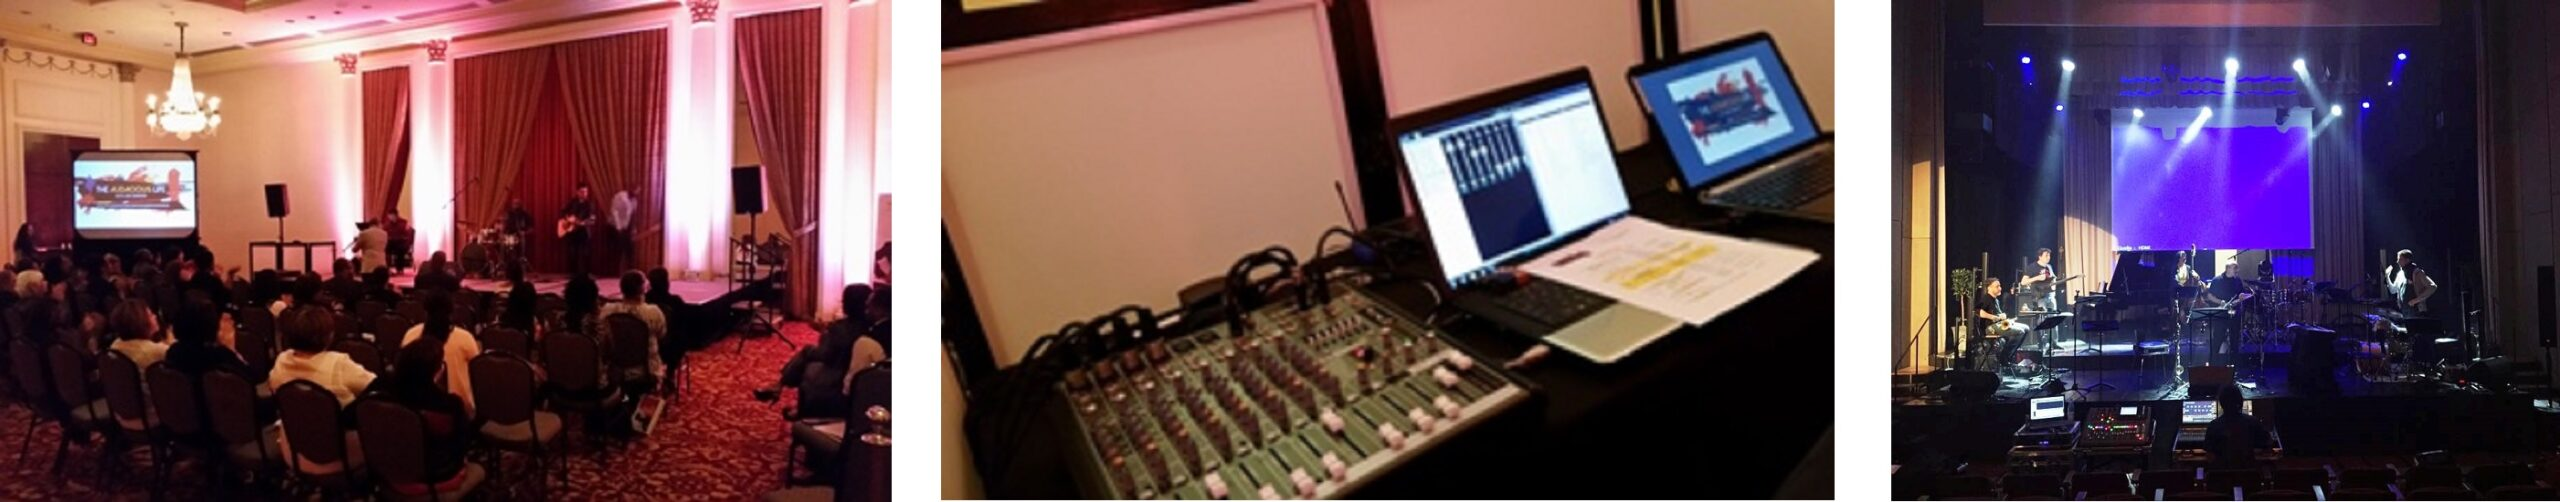 Digital Mixer Board, Sound System, AudioHouston Sound Reinforcement, Stage, Audio, engineer, technician, Sound system, Live music, band, monitors, speakers, subwoofers, Houston DJ, DJs in Houston, Sonido DJ Sammy De Houston, Awesome Music Entertainment, Awesome Event Pros, AME DJs